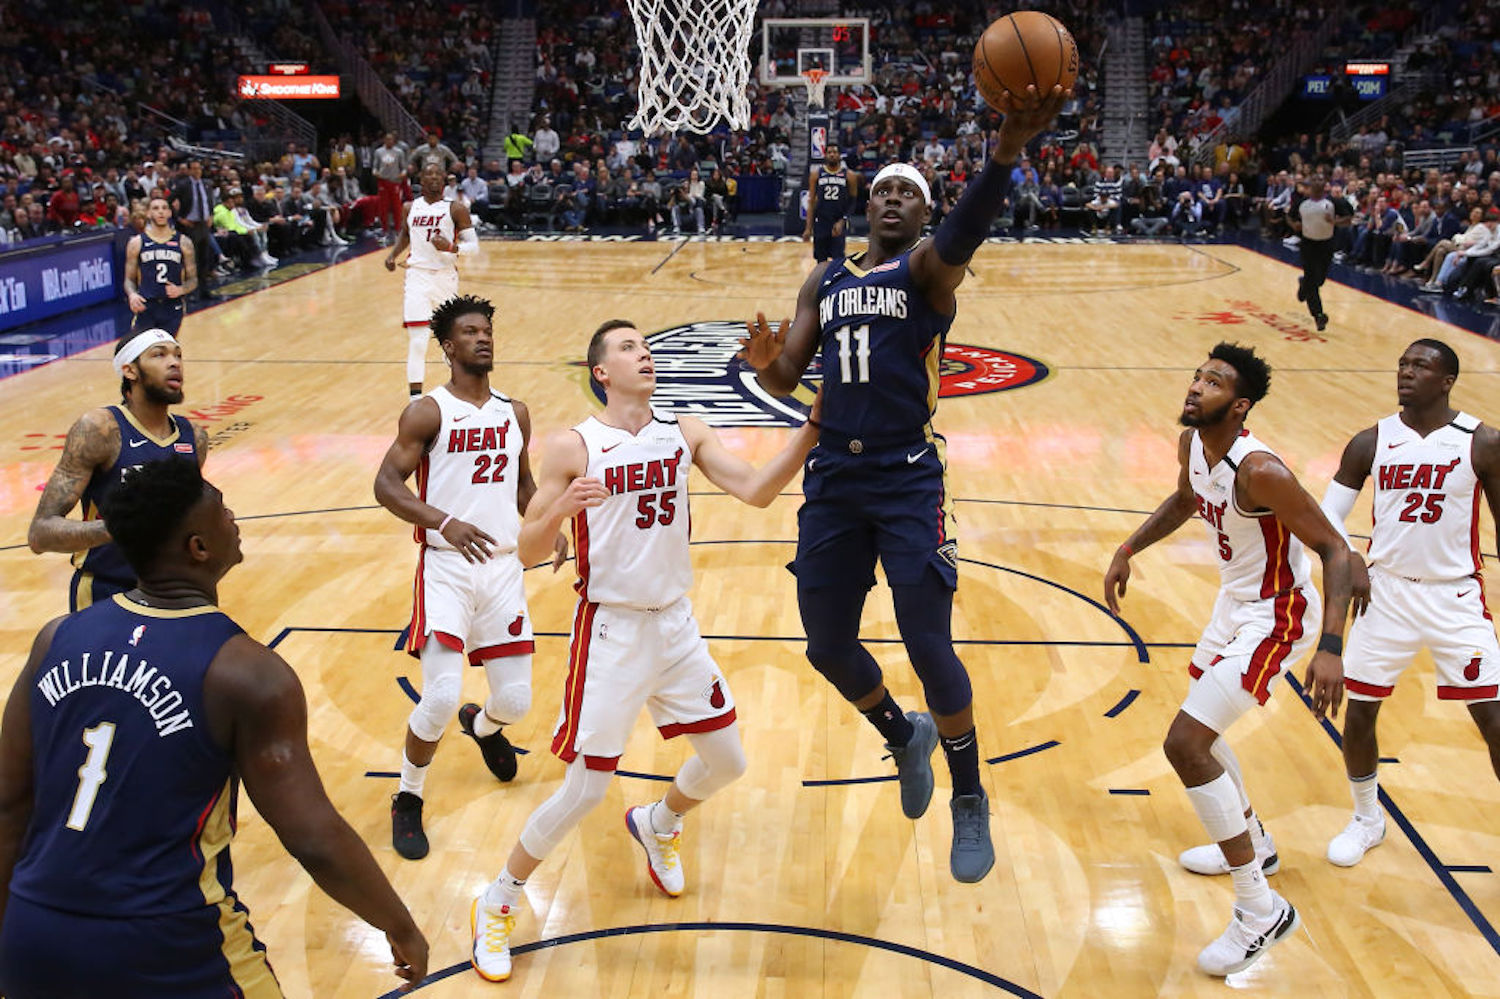 The Pelicans gave former All-Star Jrue Holiday $131 million three years ago, but now they're trying to shop him ahead of the 2020-21 season.